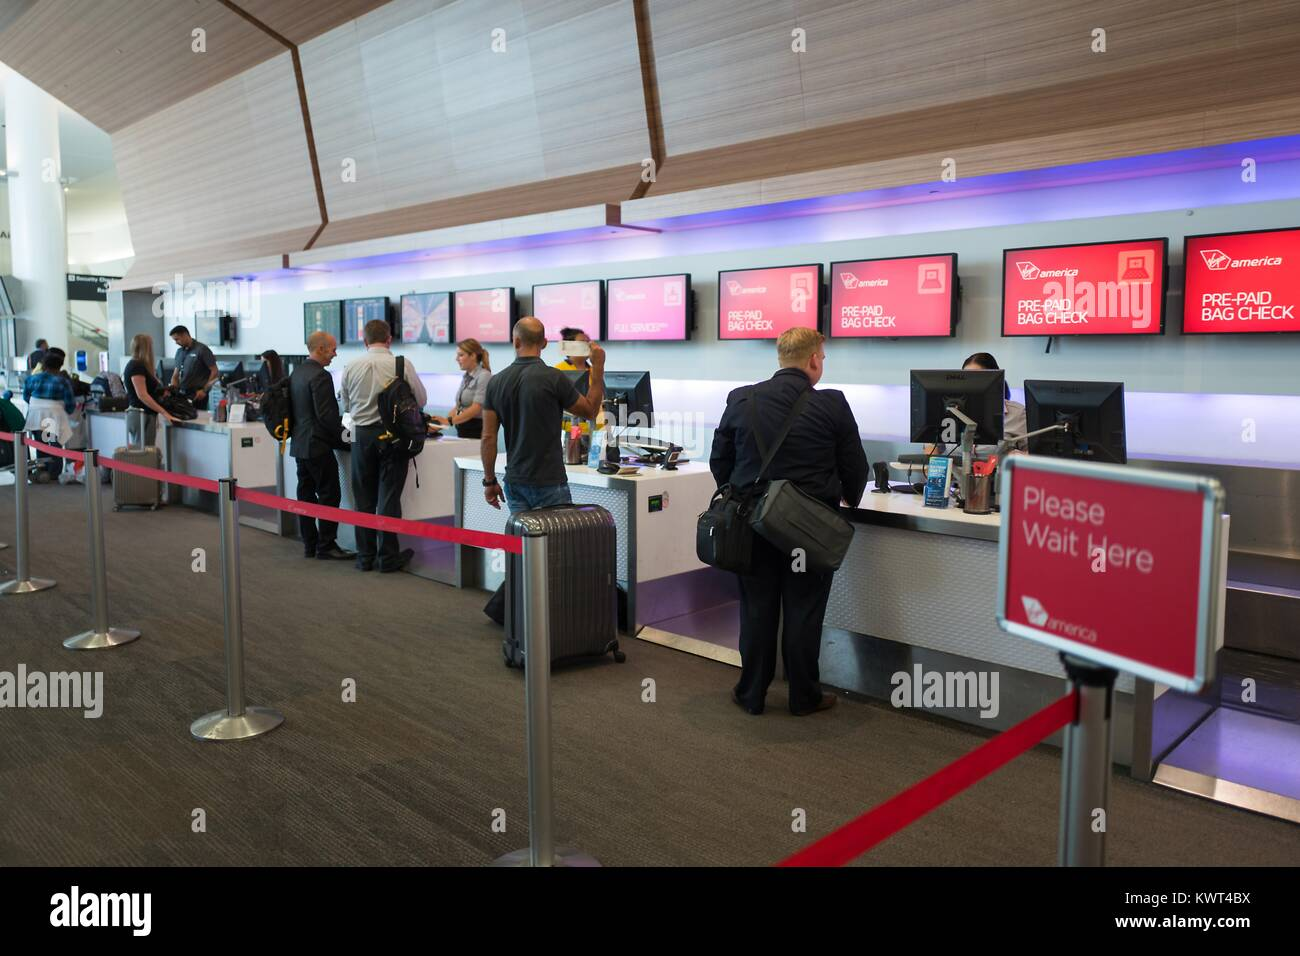 Virgin atlantic is the first uk airline to be added to apple's passbook virgin america check in baggage app, dopefurien.ga checking in online and saving your boarding pass on your phone, dopefurien.ga fly to the us united airlines, lufthansa and american airlines.